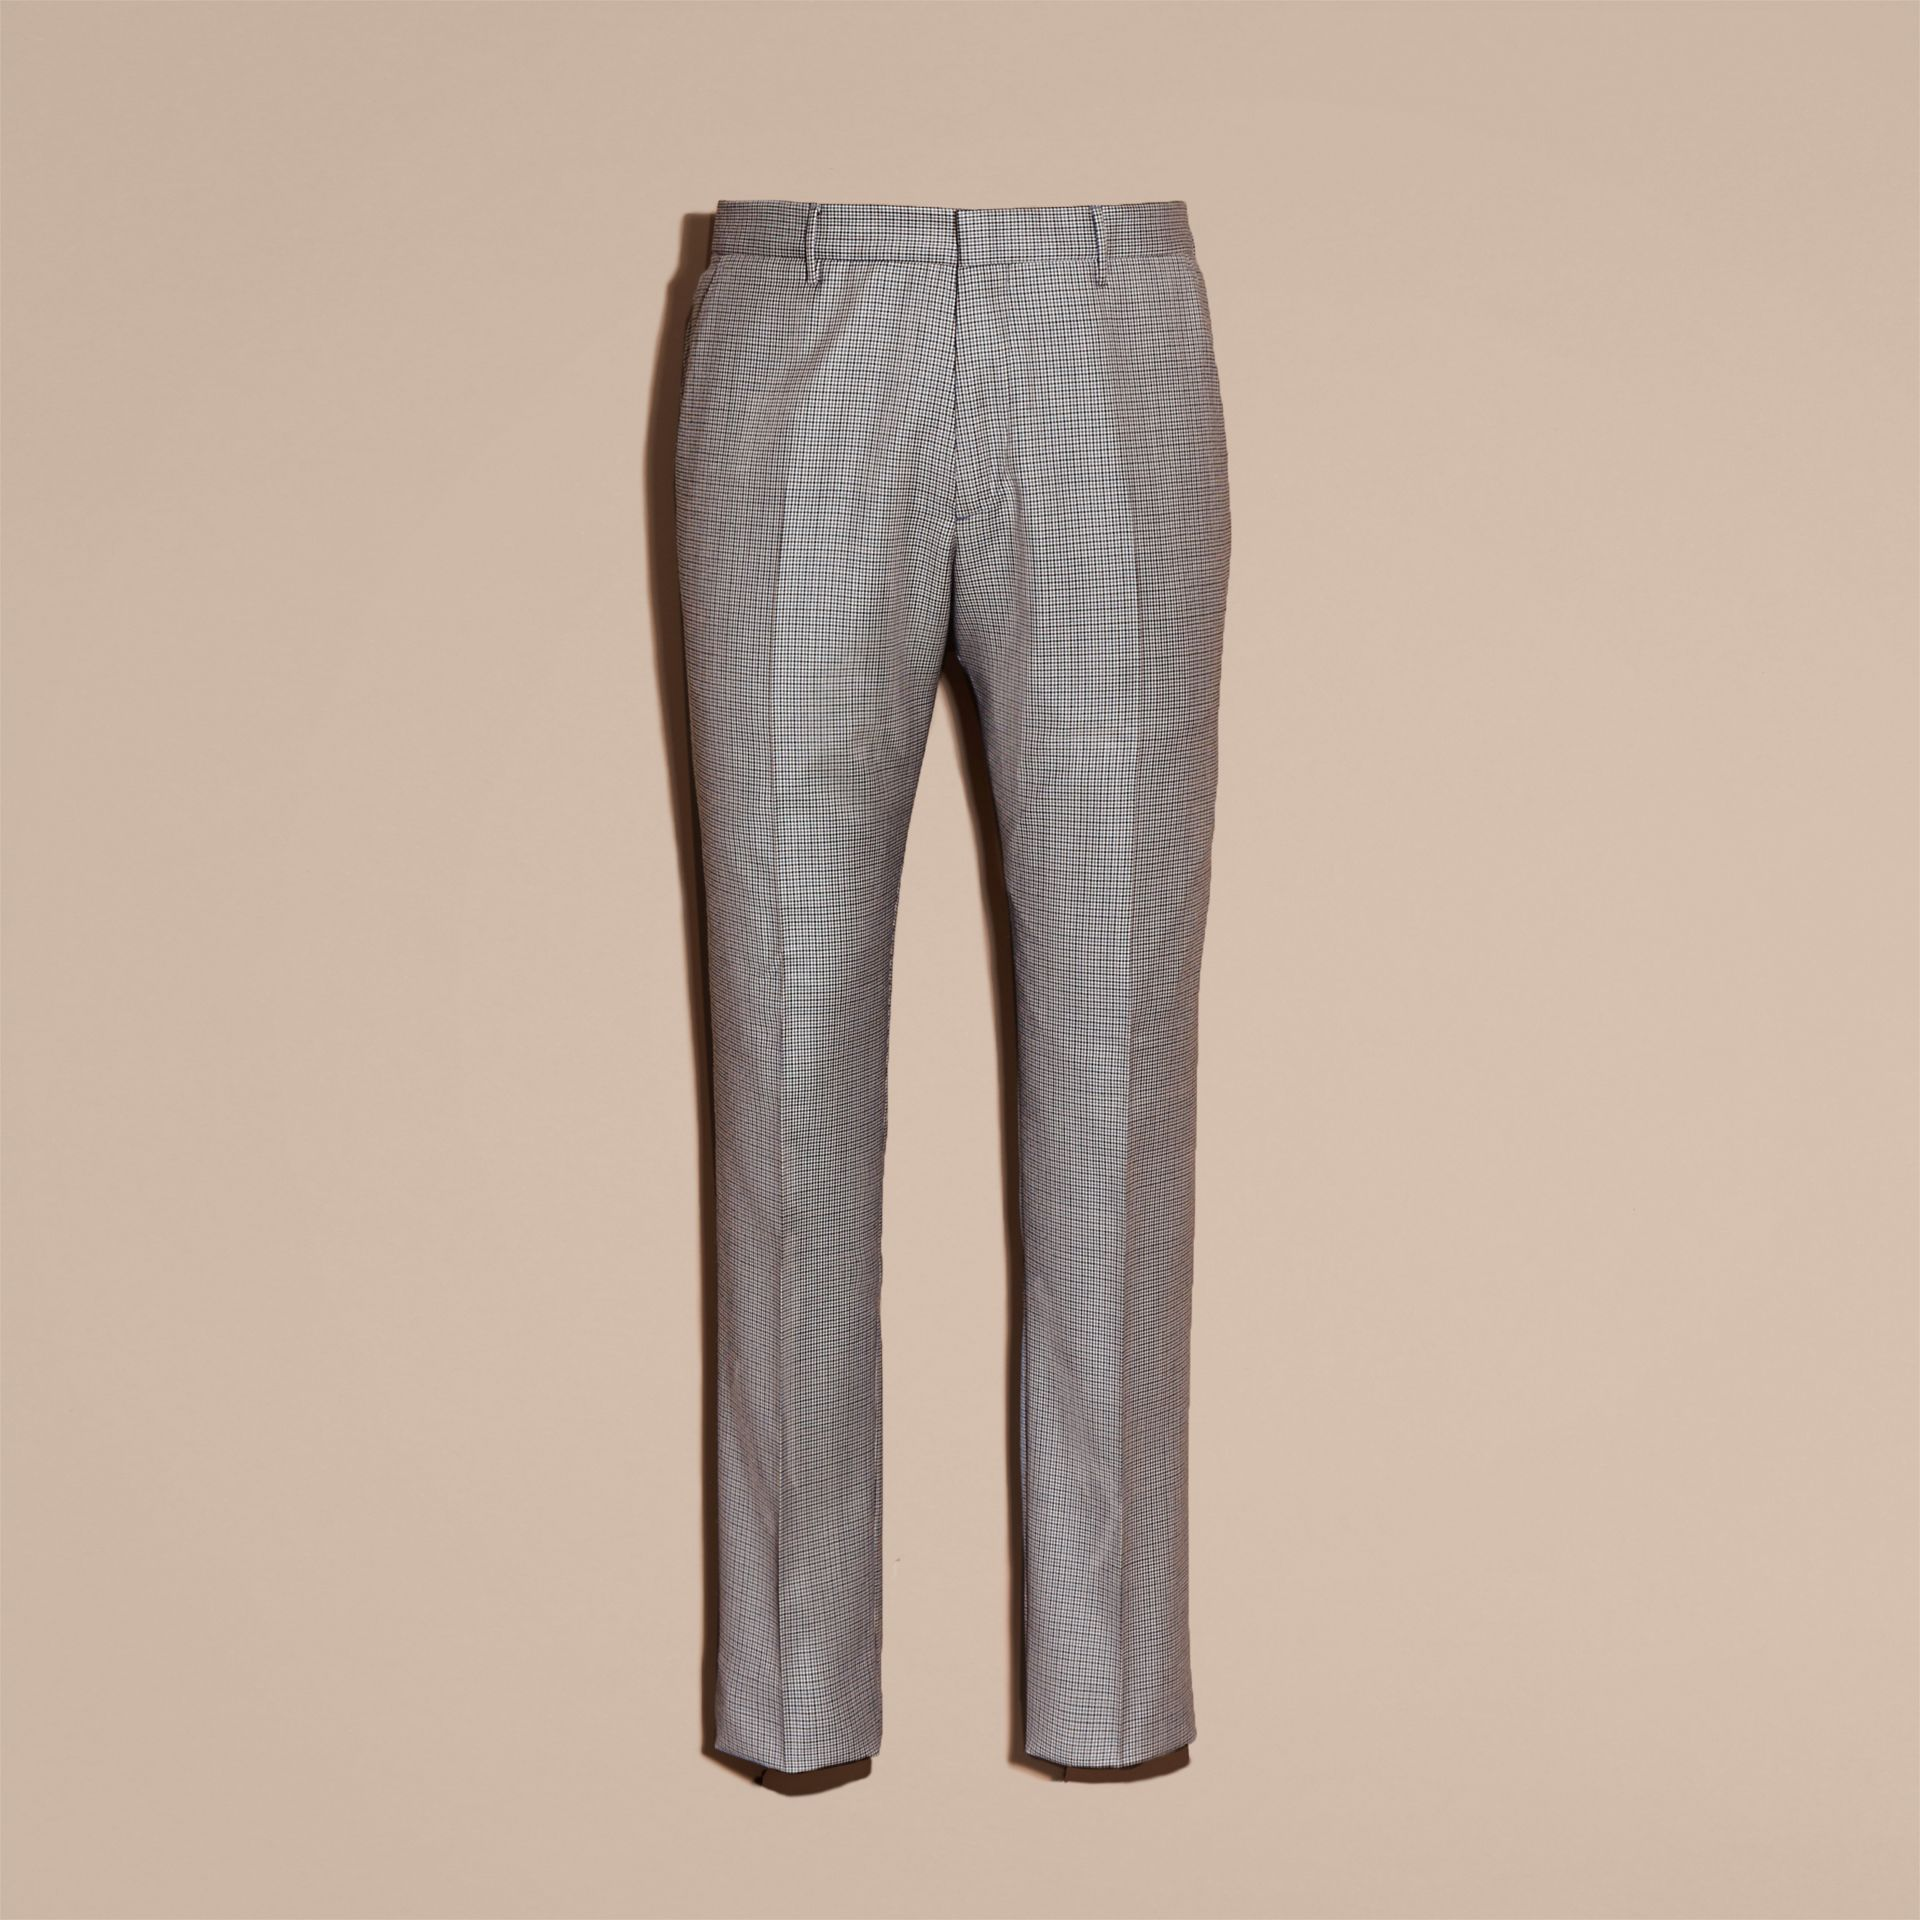 Slim Fit Houndstooth Wool Trousers in Light Blue - Men | Burberry - gallery image 4